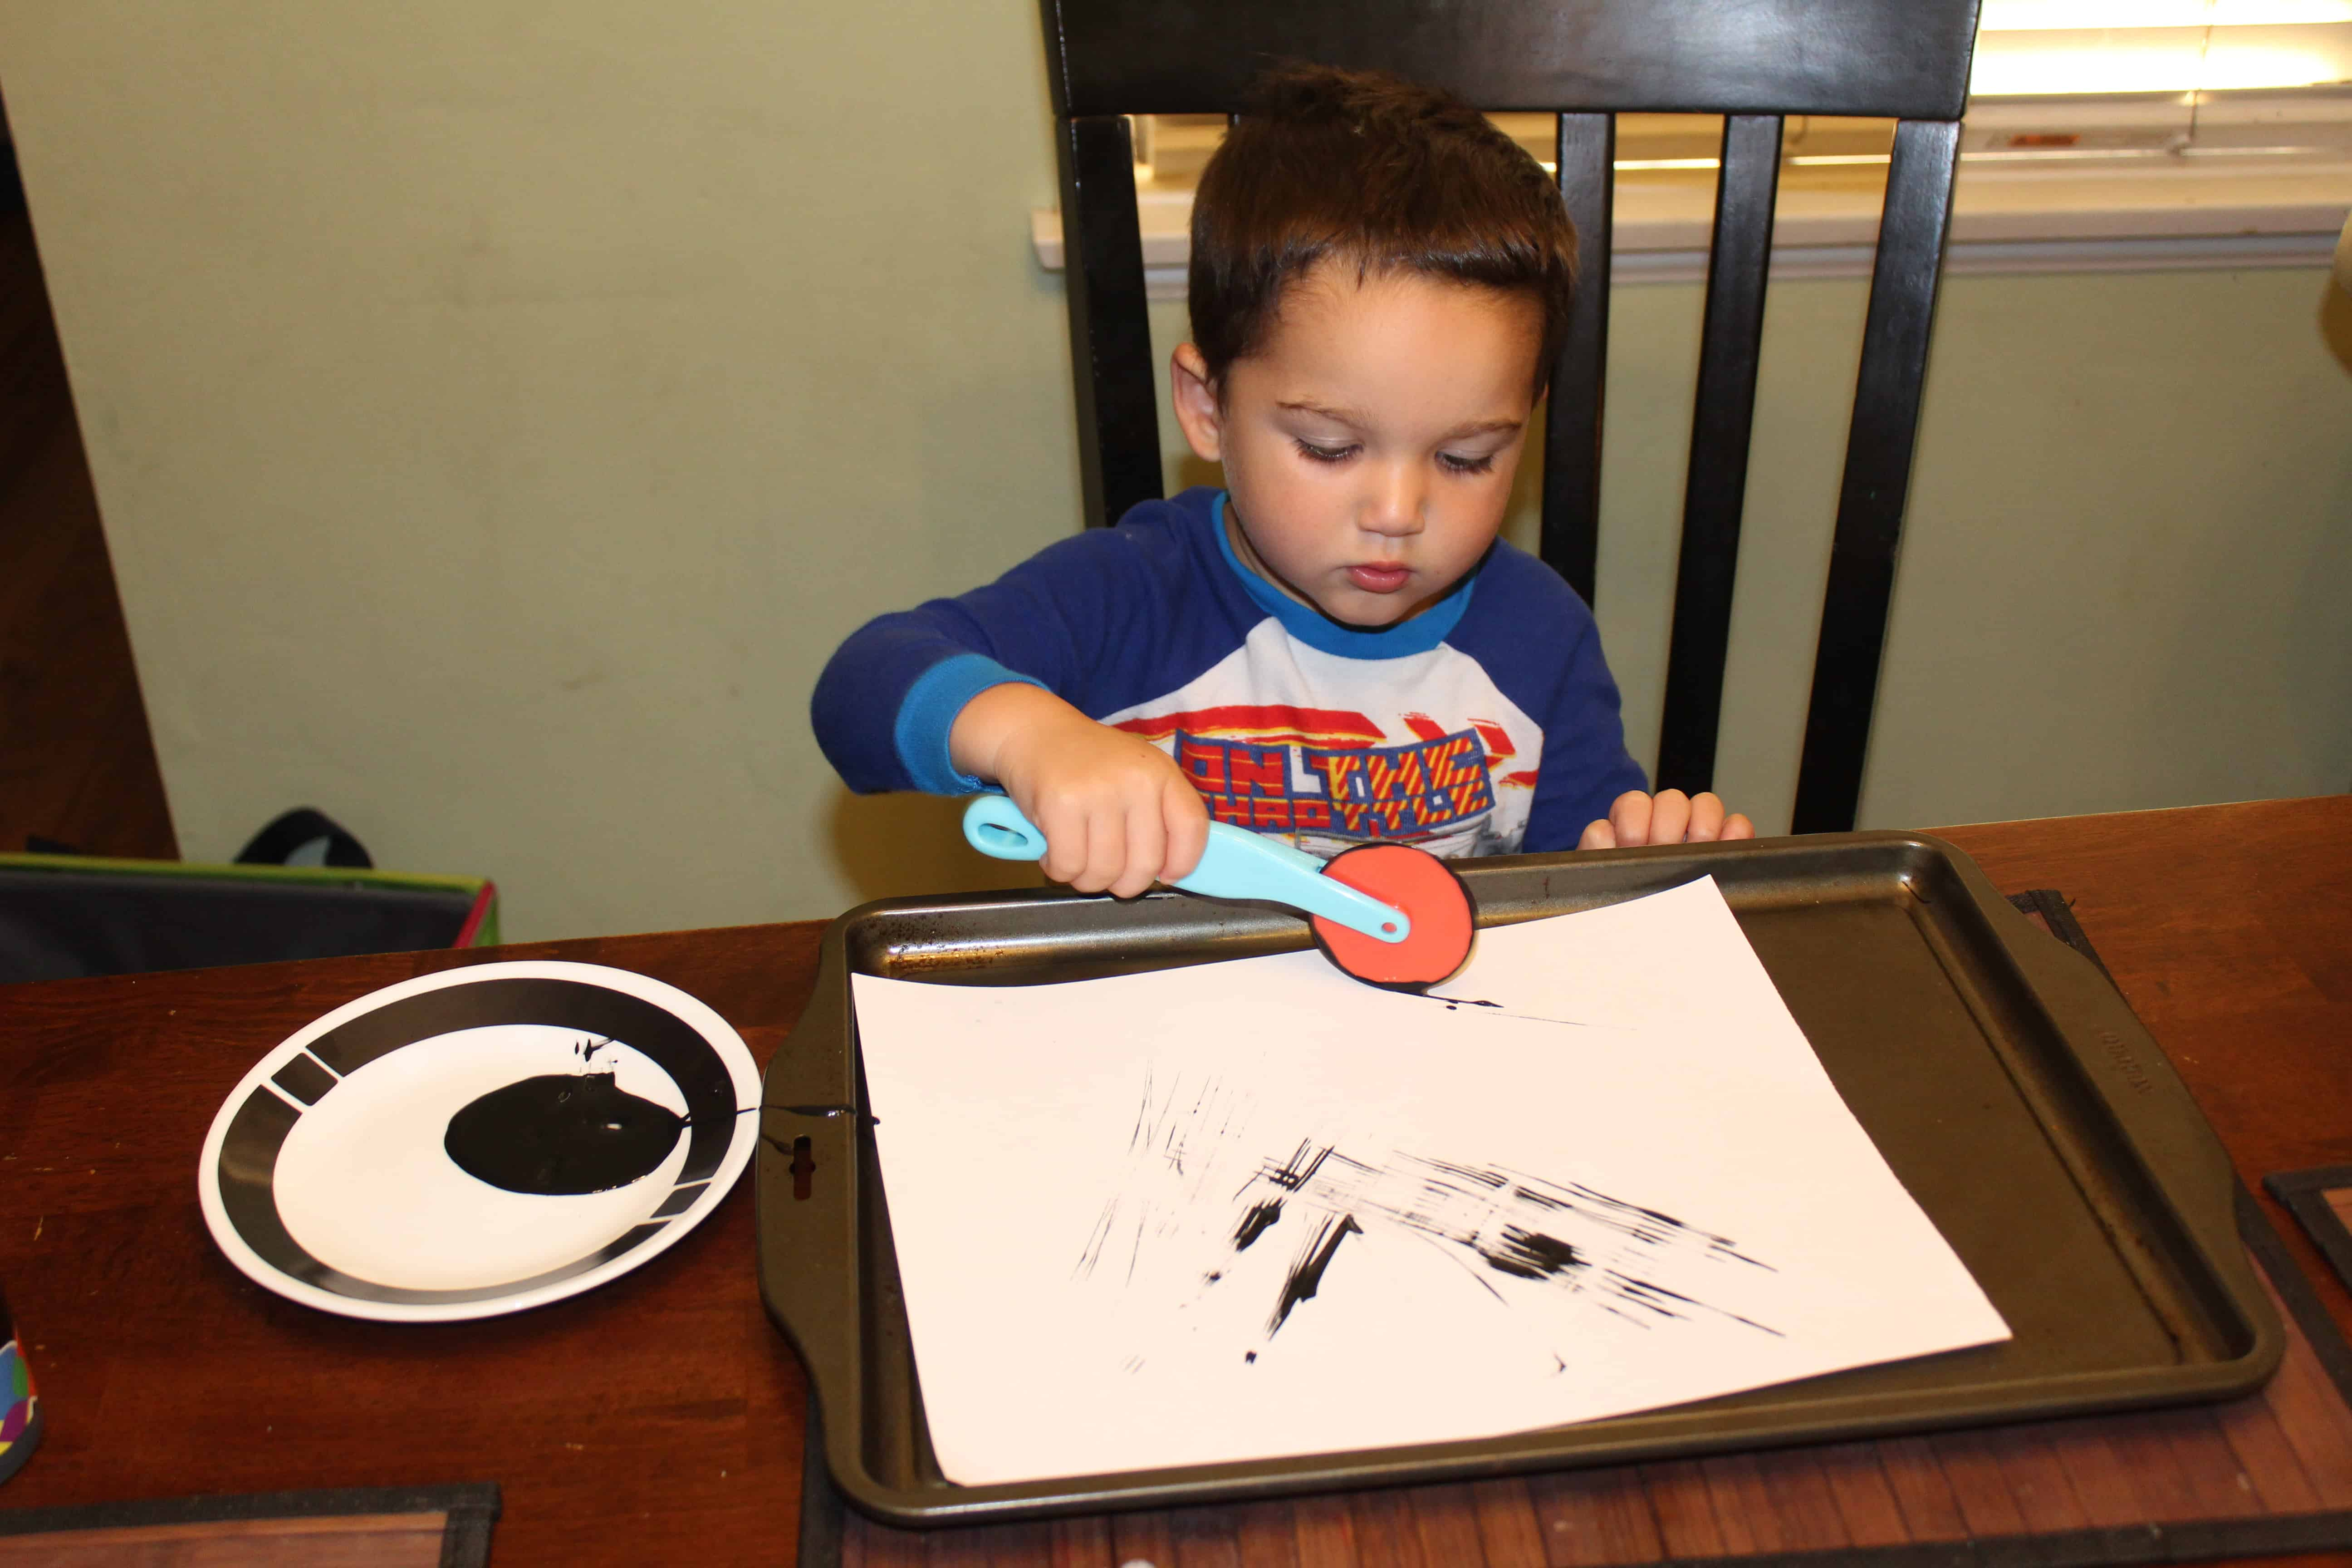 Toddler using play dough tool to paint lines on the white sheet of paper.